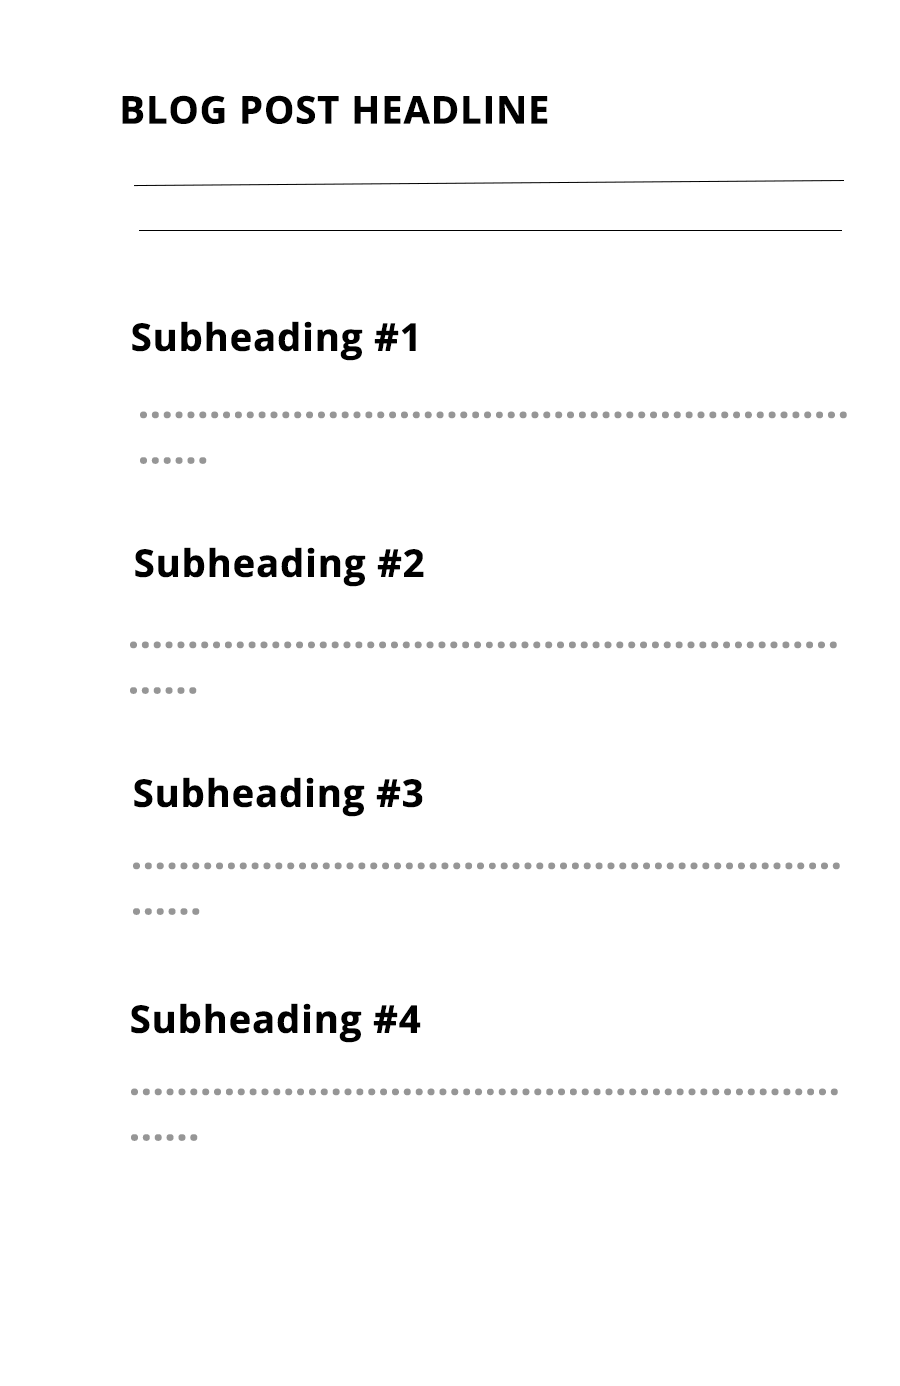 break your article into subheadings